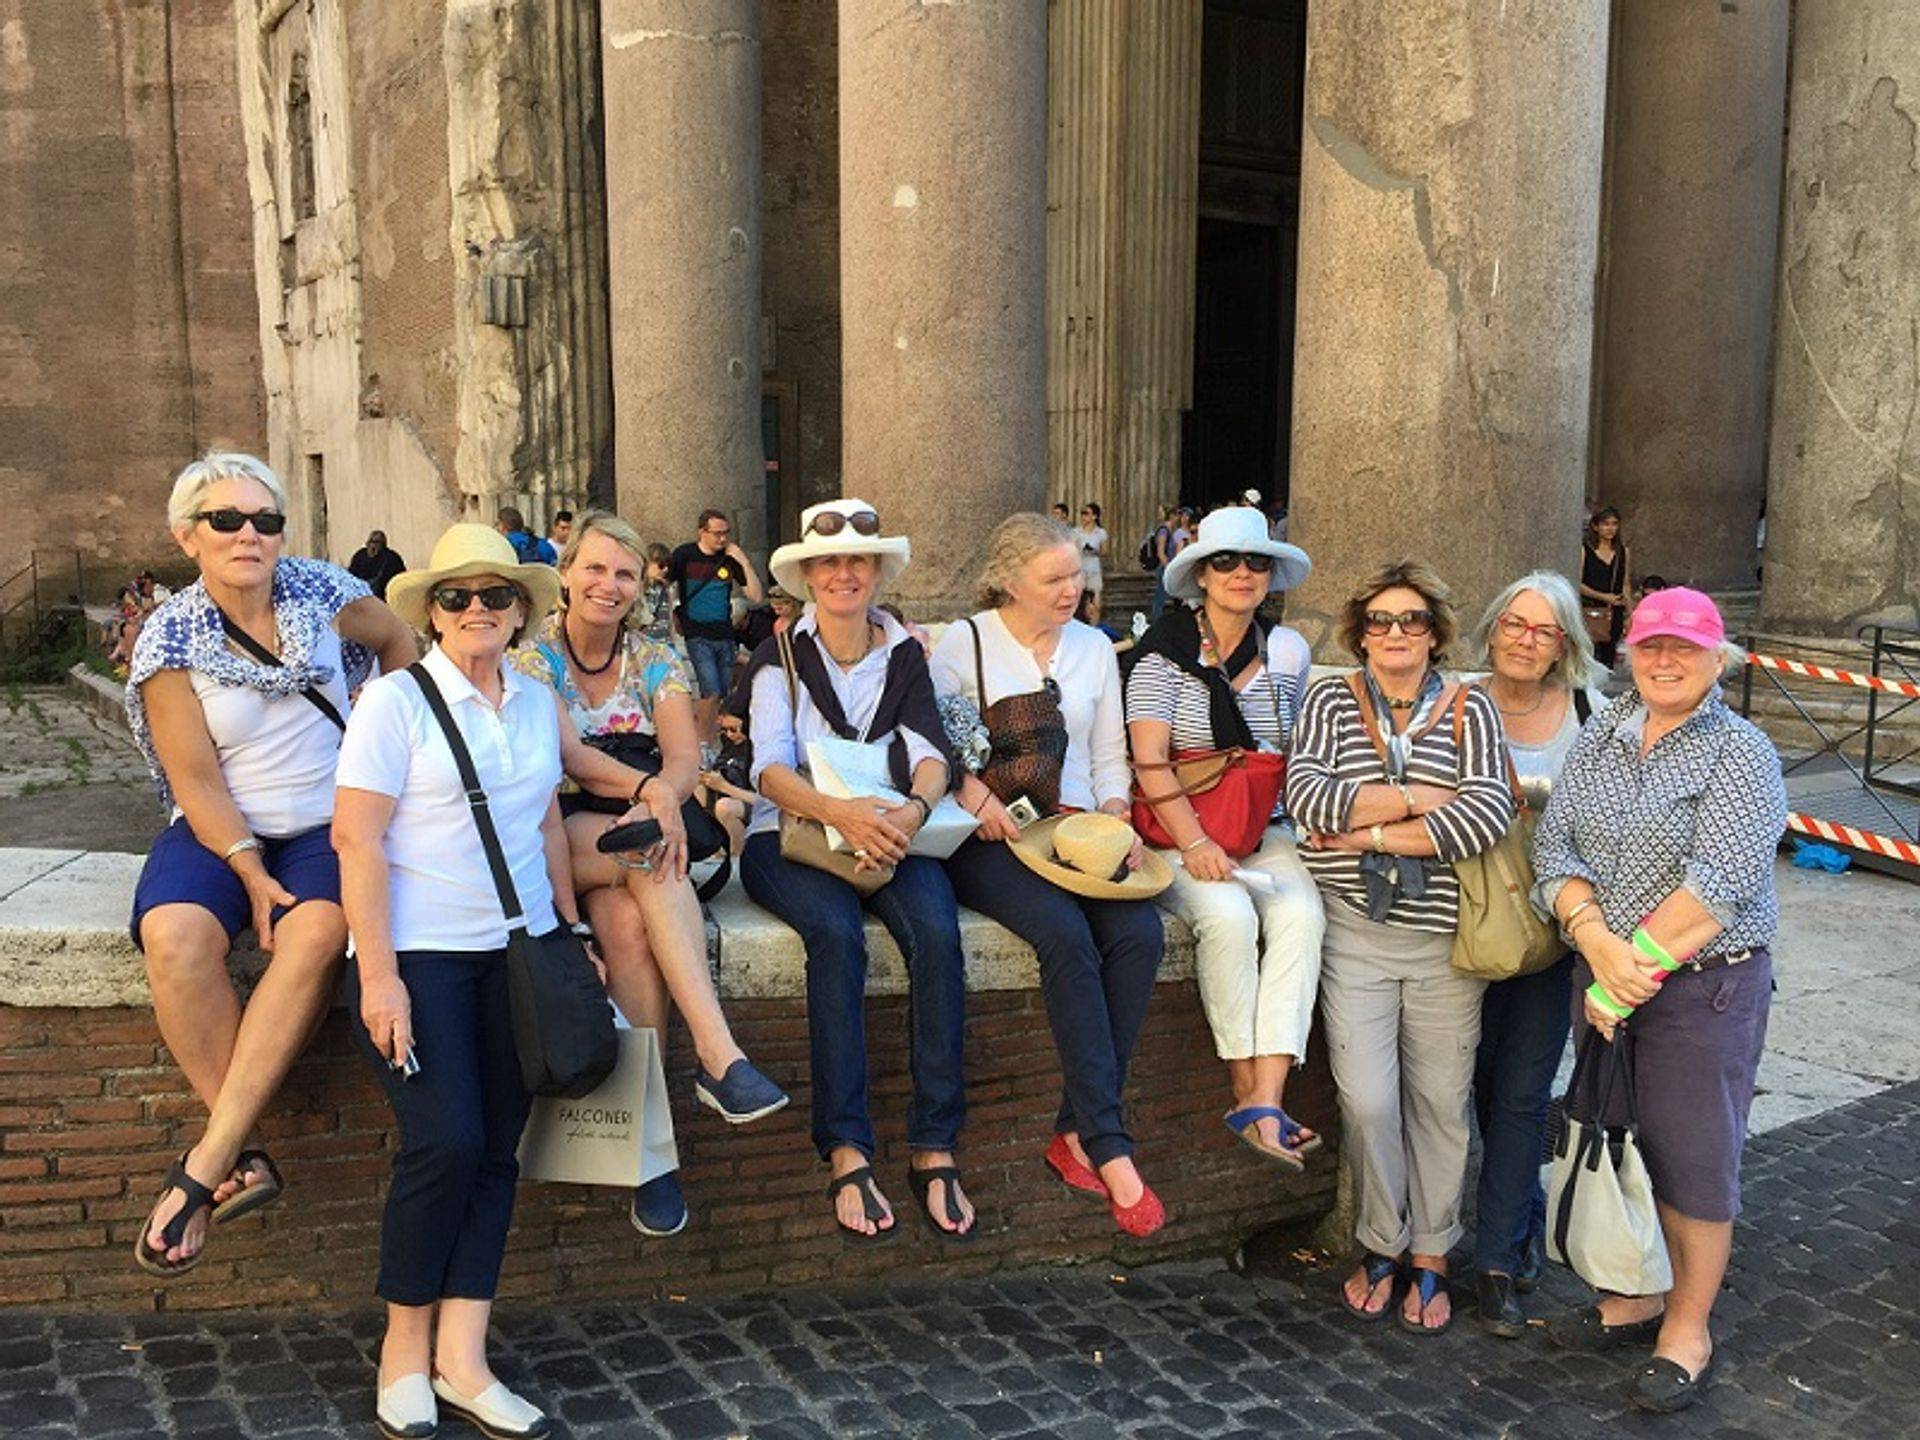 AUSTRALIAN WOMENS TRAVEL  Small group tours tours  Just